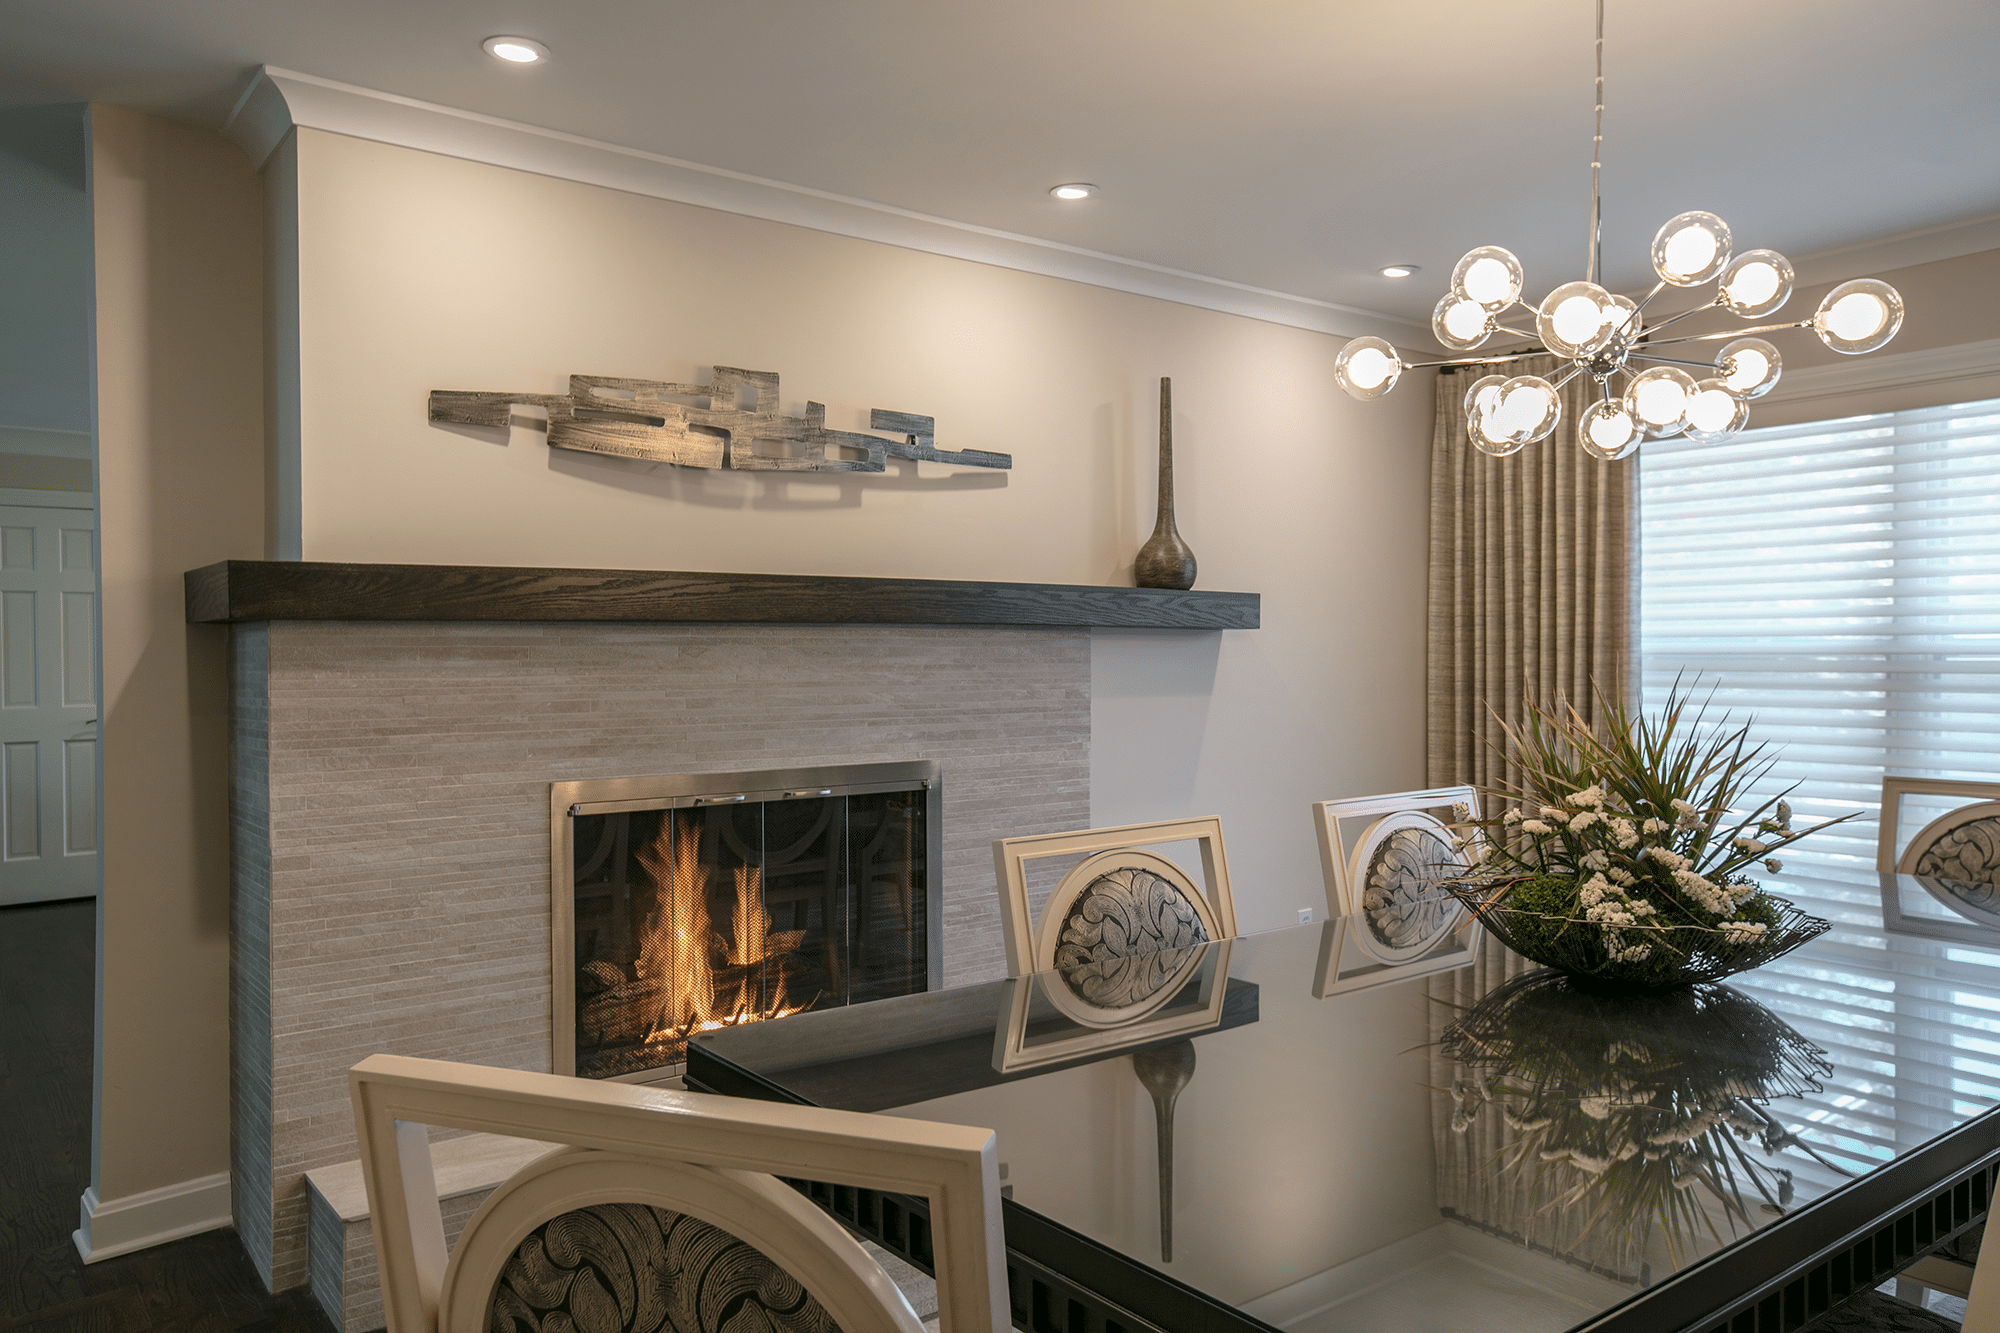 White chandelier and fireplace